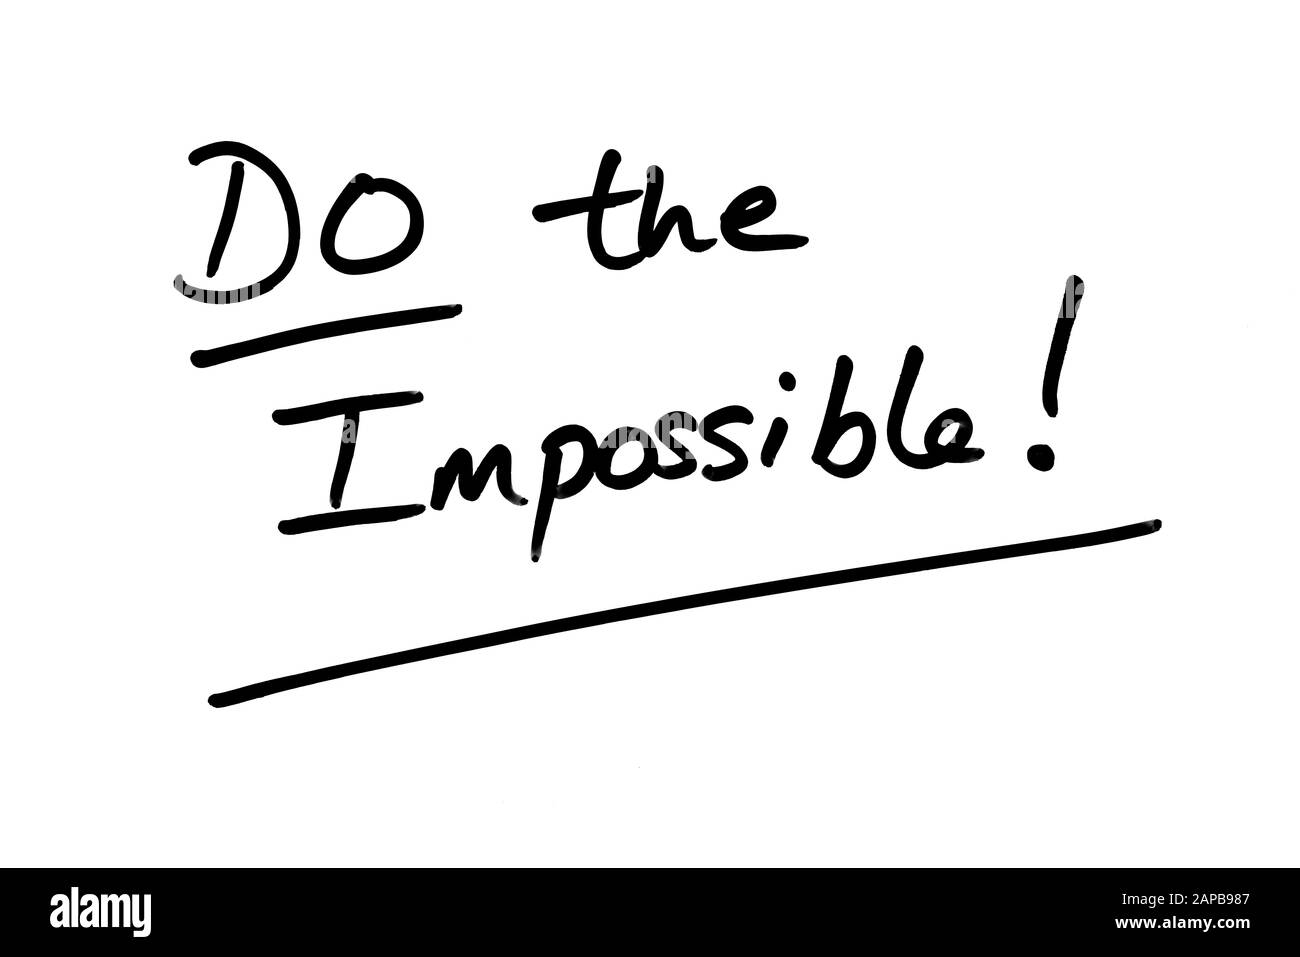 Do the Impossible! handwritten on a white background. Stock Photo